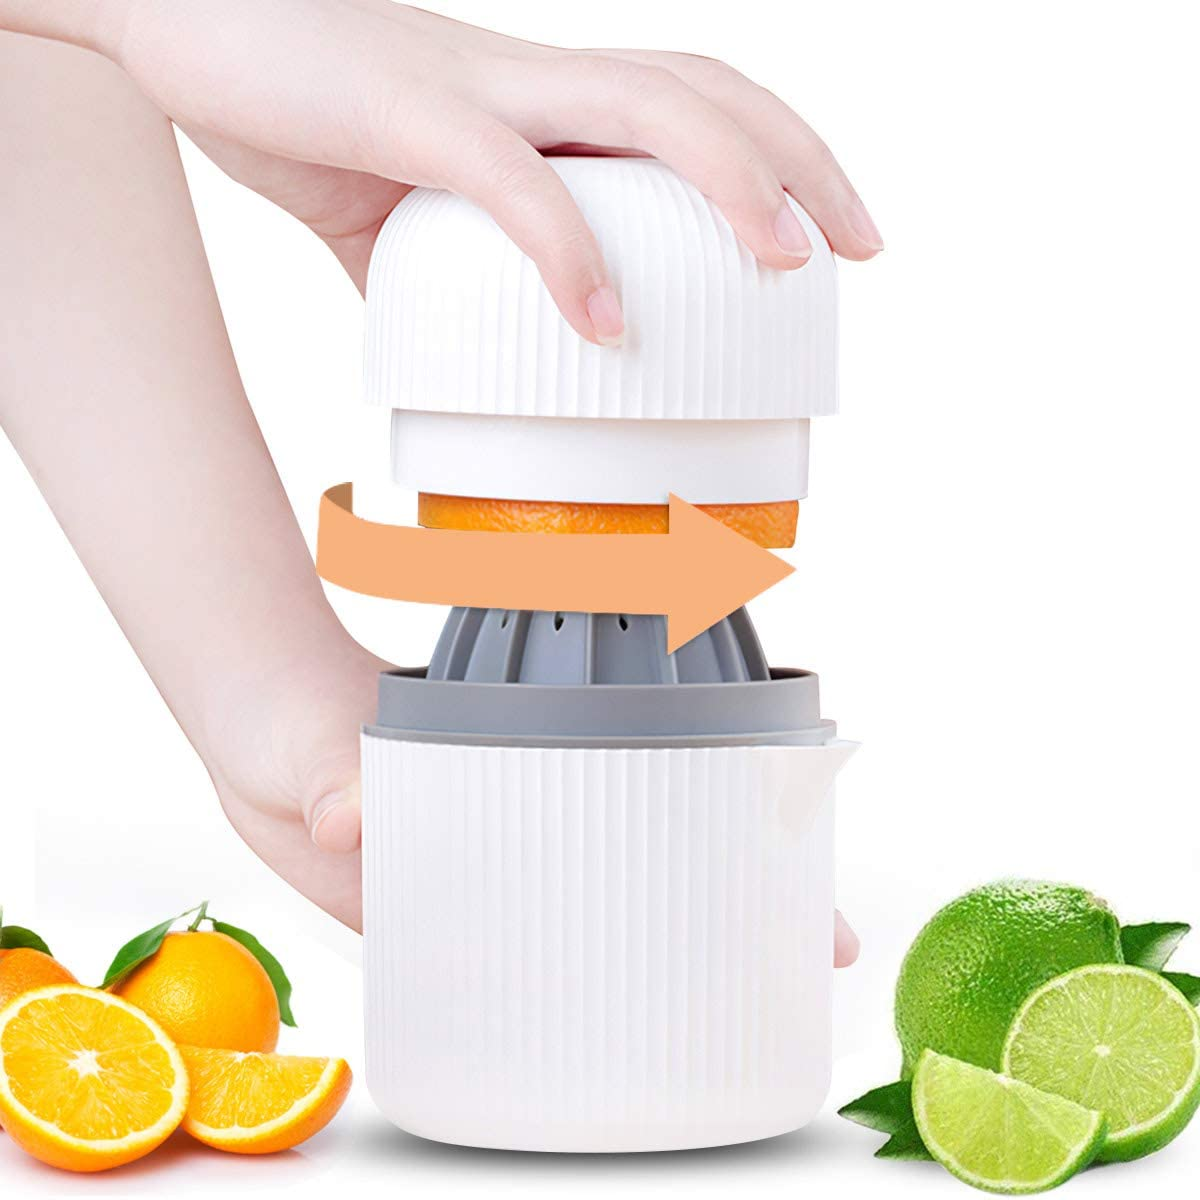 Citrus Juicer,GMISUN Lemon Orange Manual Hand Squeezer 2 in 1 Lid Rotation Hand Press Reamer with Strainer and Container (White)